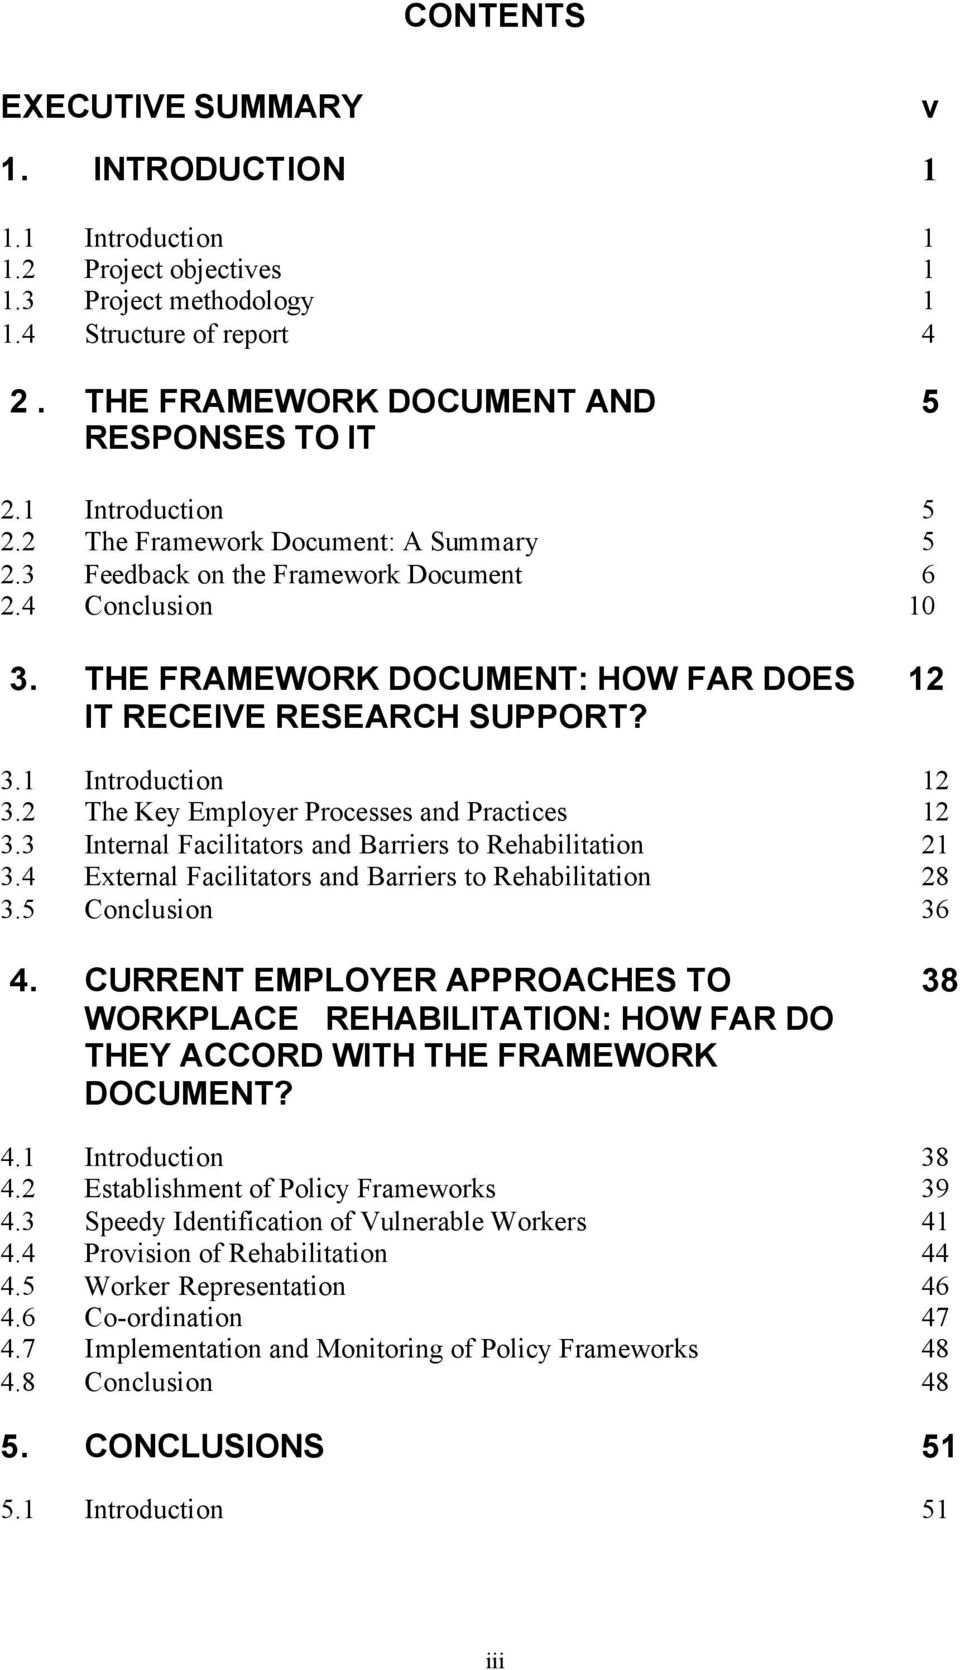 2 The Key Employer Processes and Practices 12 3.3 Internal Facilitators and Barriers to Rehabilitation 21 3.4 External Facilitators and Barriers to Rehabilitation 28 3.5 Conclusion 36 4.